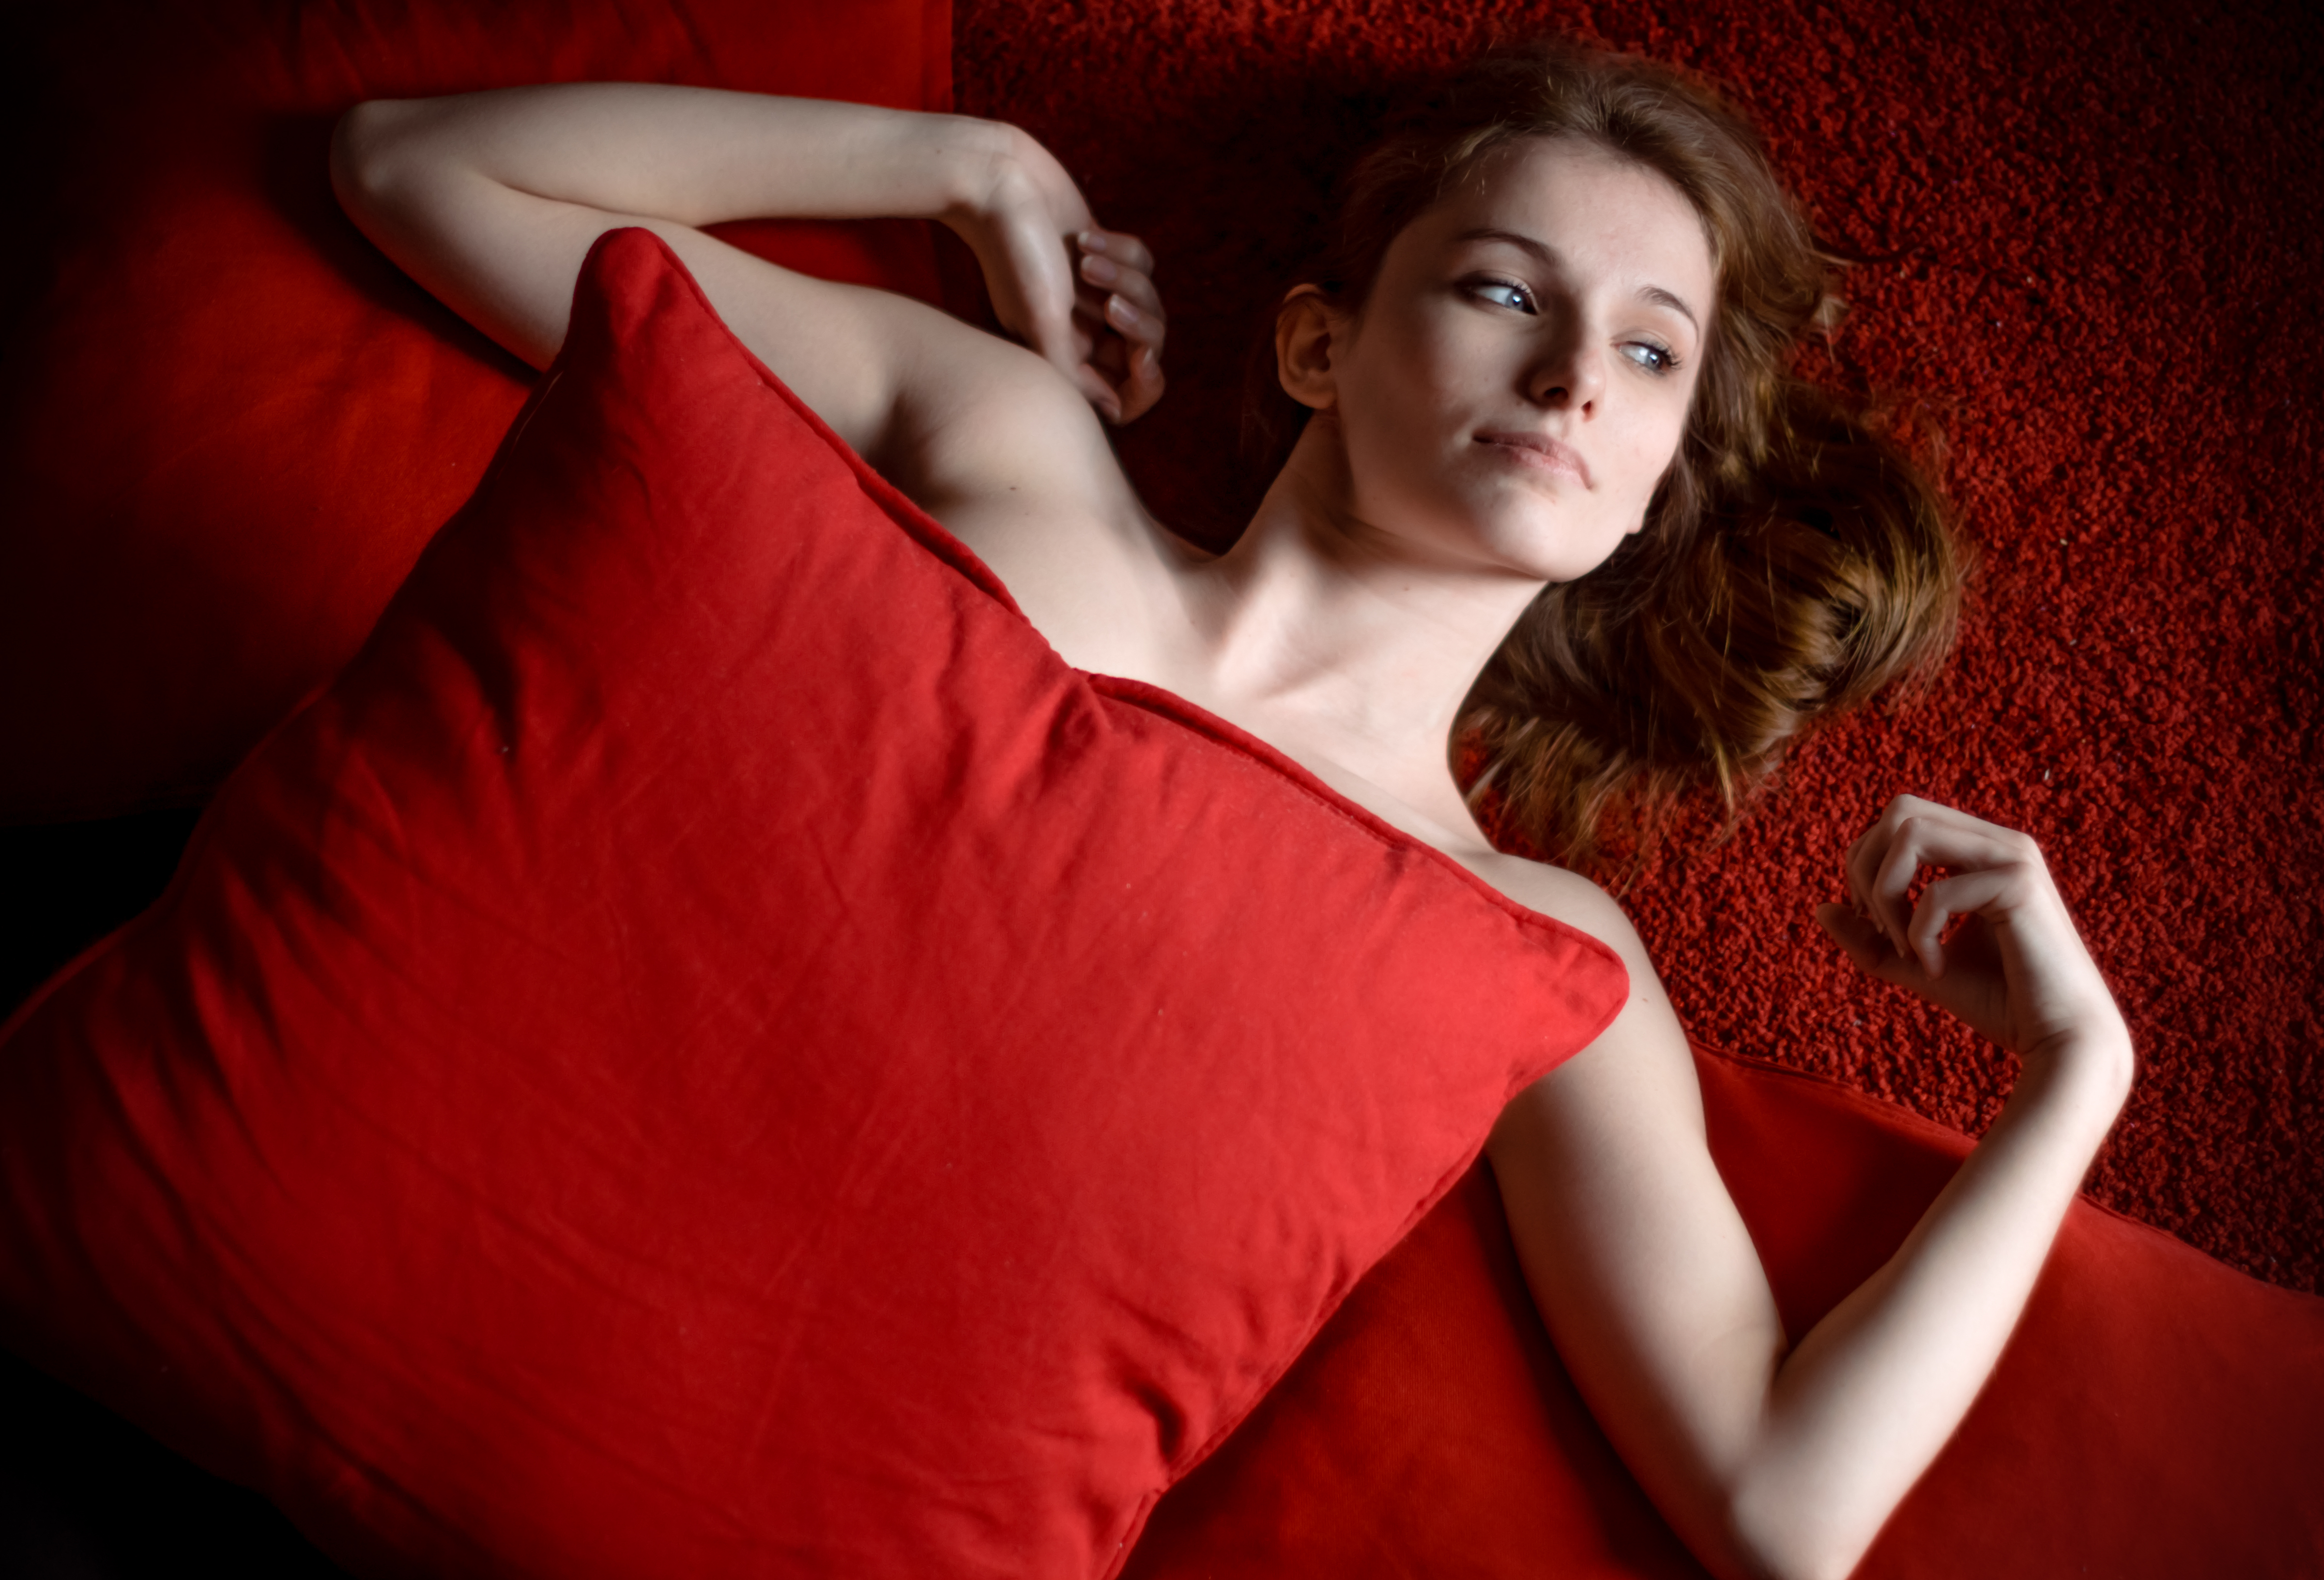 Hot single lesbians to text